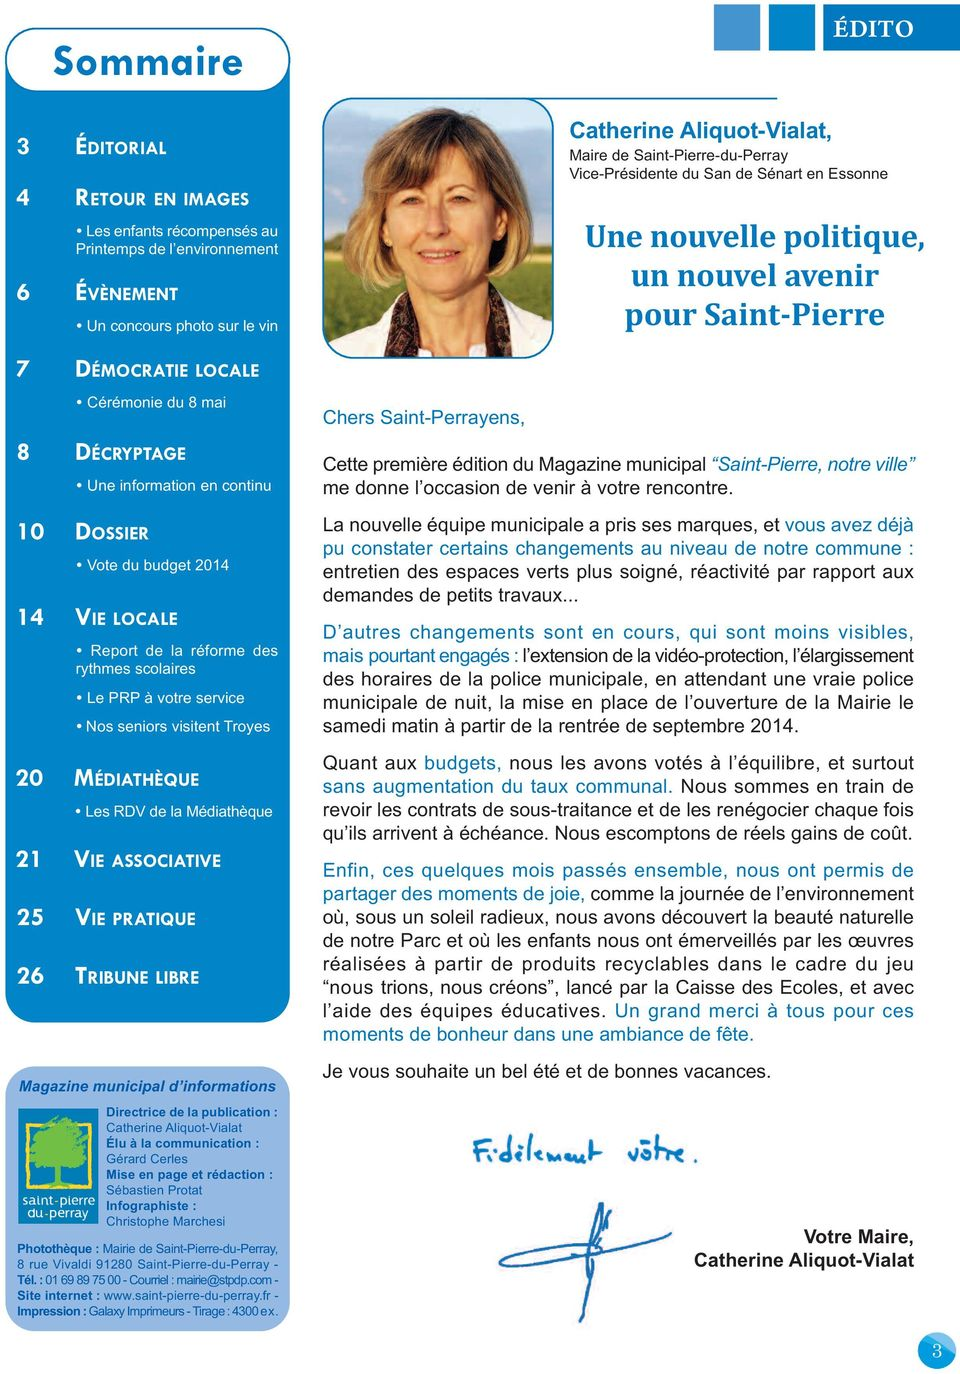 Médiathèque 21 VIE ASSOCIATIVE 25 VIE PRATIQUE 26 TRIBUNE LIBRE Magazine municipal d informations Directrice de la publication : Catherine Aliquot-Vialat Élu à la communication : Gérard Cerles Mise